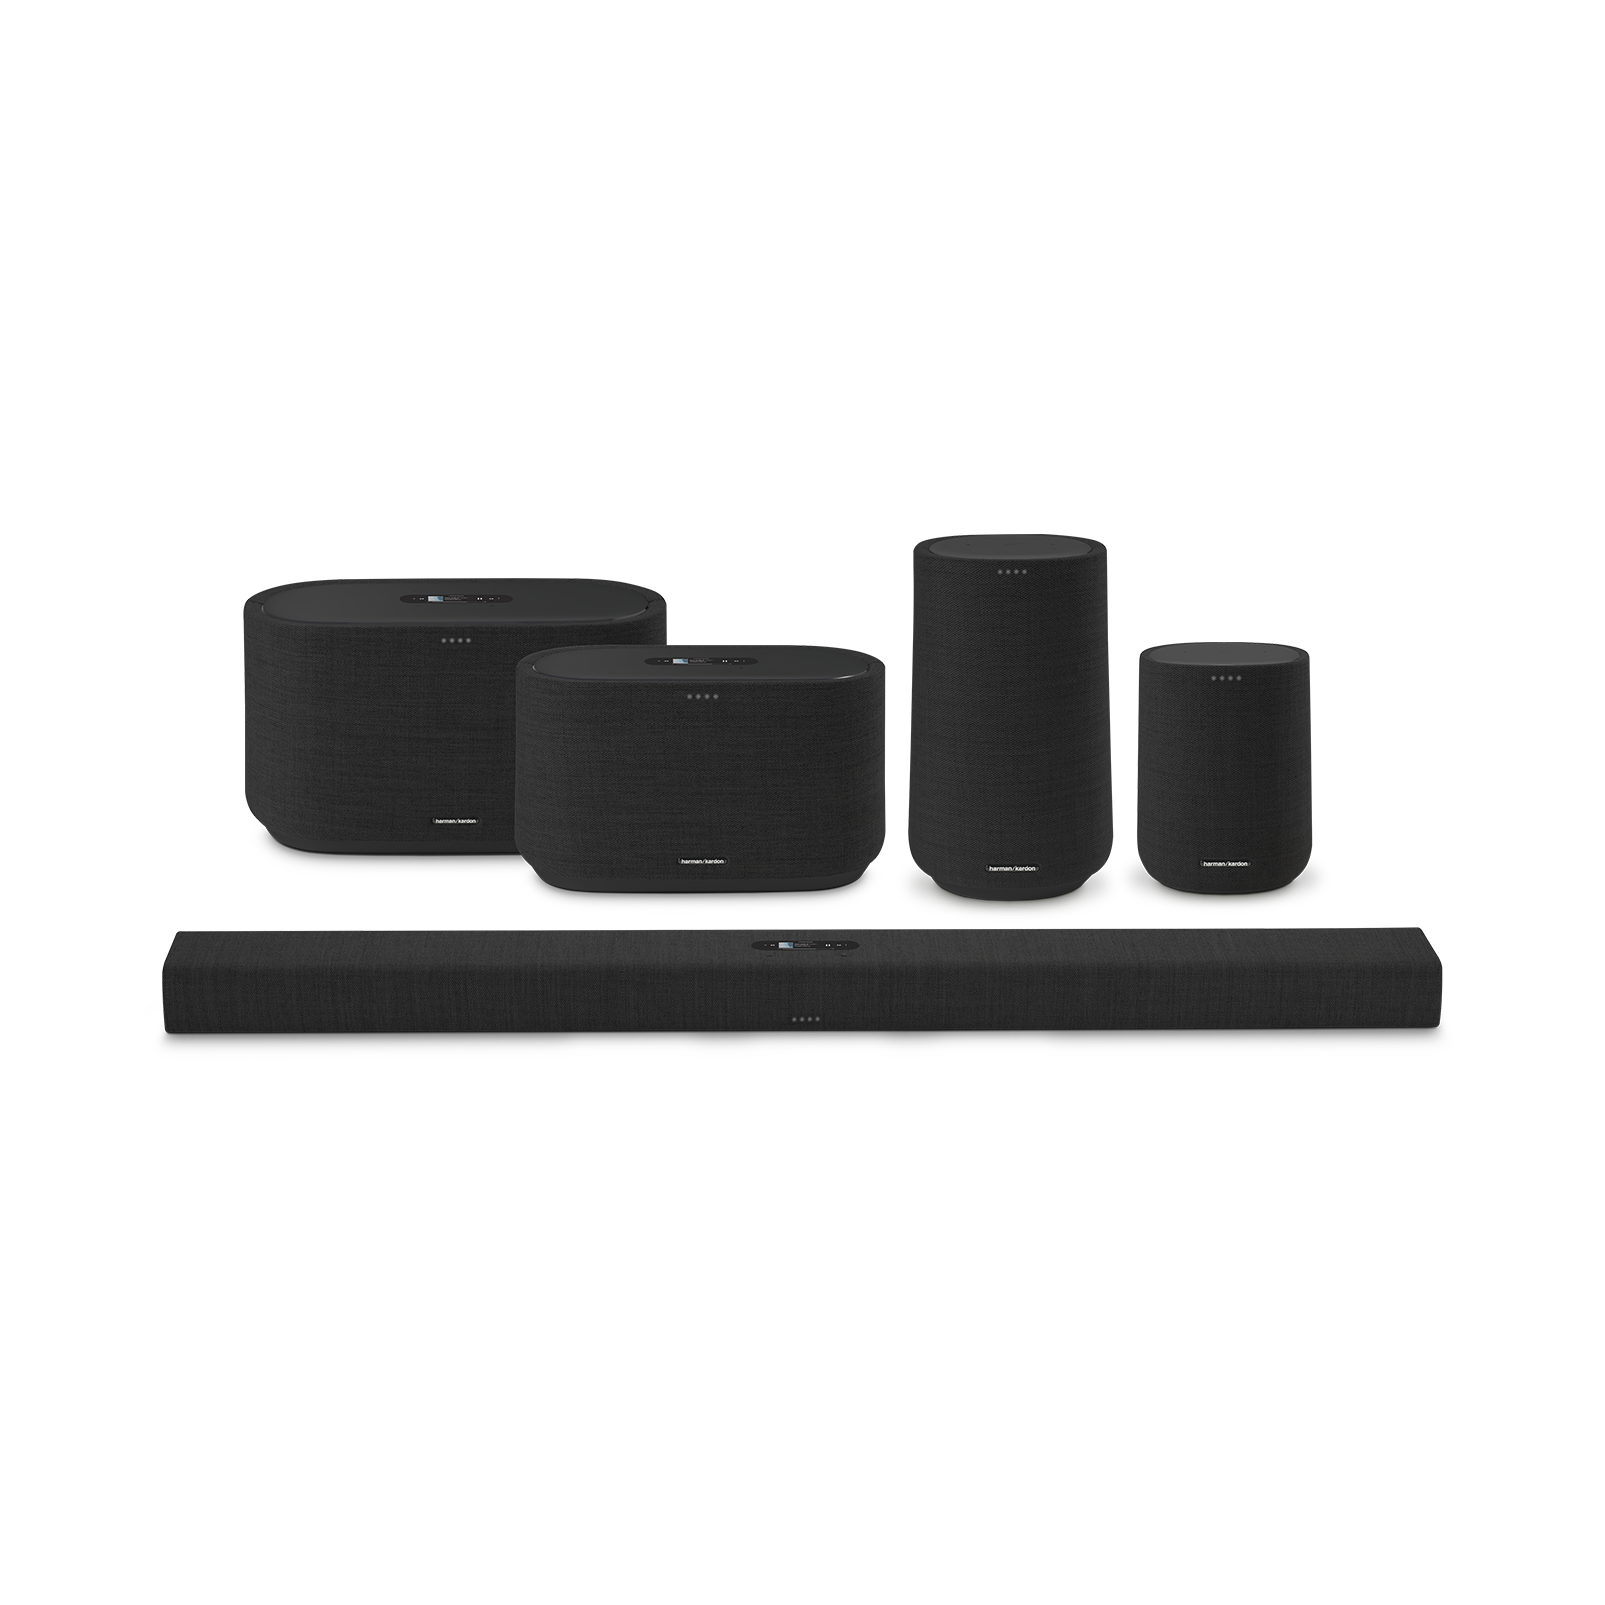 Harman Kardon Citation 100 MKII - Black - Bring rich wireless sound to any space with the smart and compact Harman Kardon Citation 100 mkII. Its innovative features include AirPlay, Chromecast built-in and the Google Assistant. - Detailshot 5